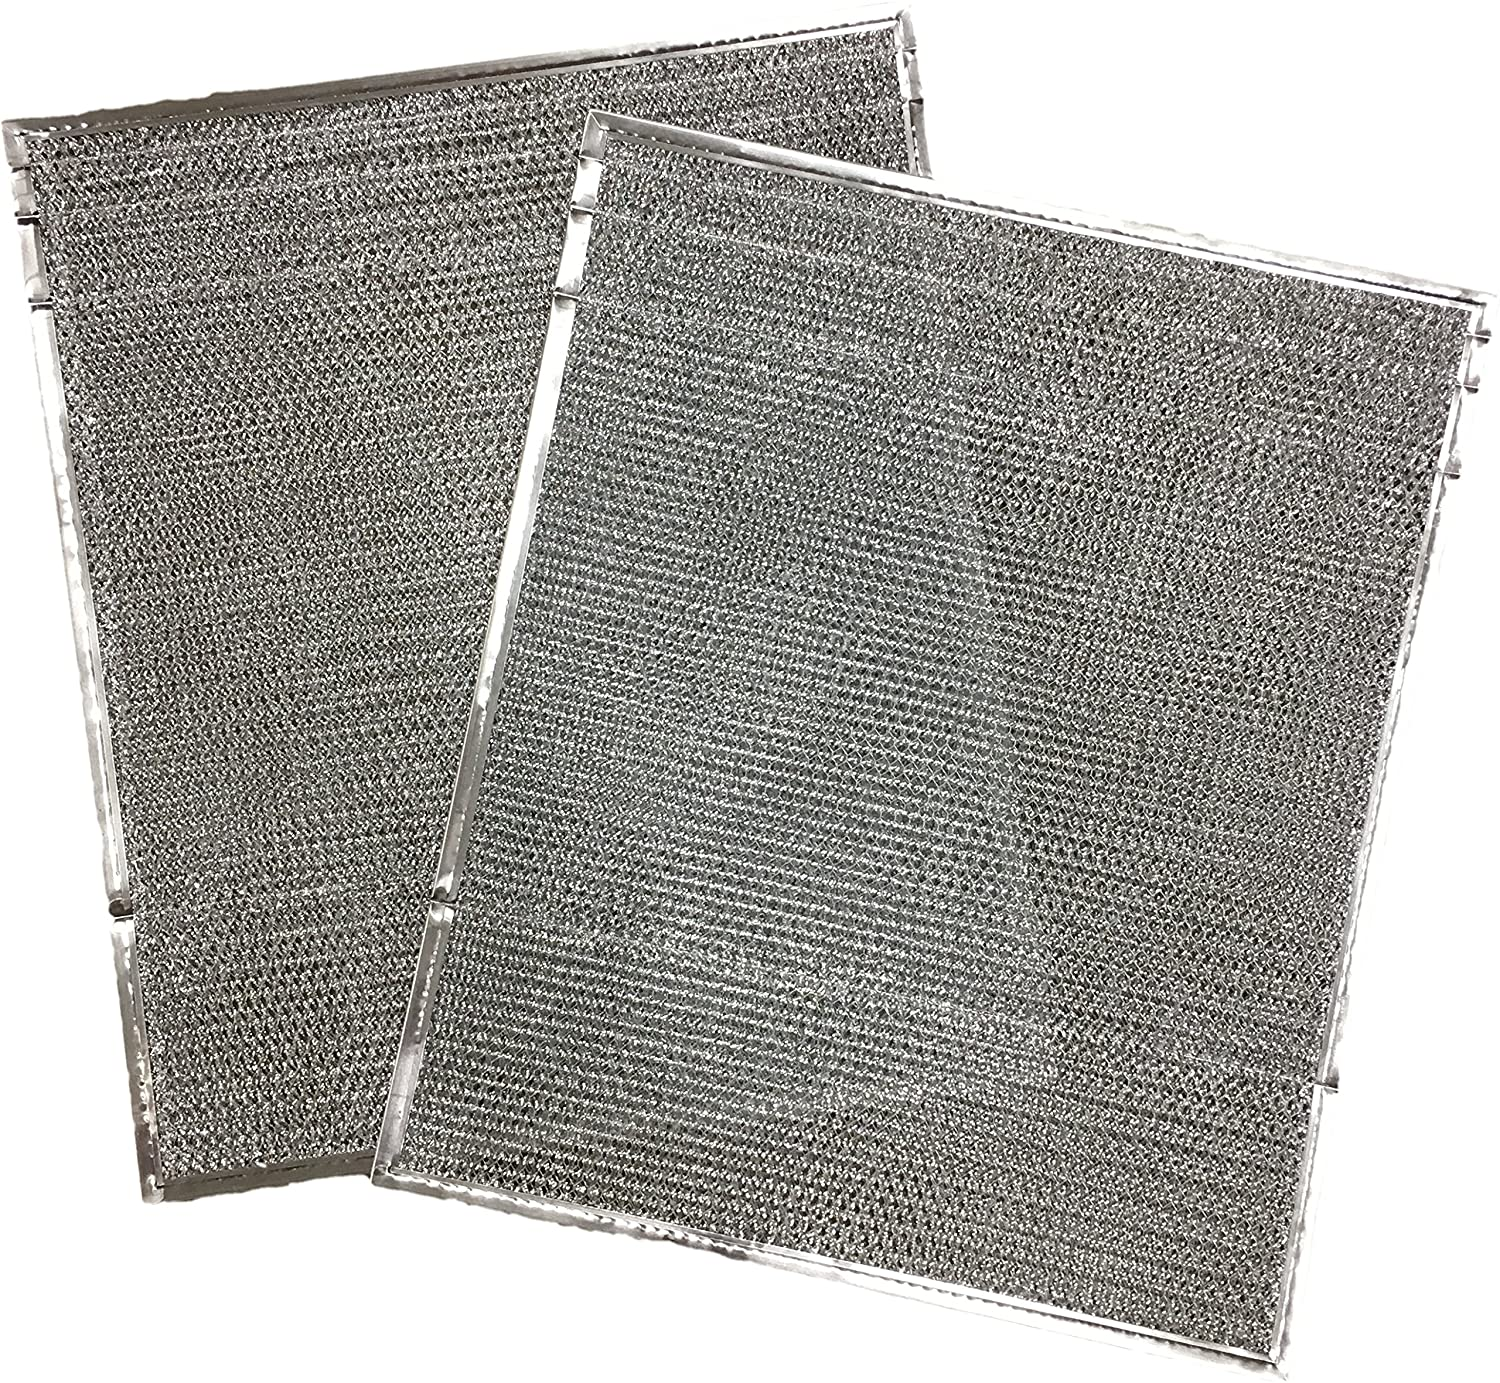 """Duraflow Filtration 917763 Metal Mesh Filter, Fits Nordyne 917763 A-Coils, One Pair, 19"""" H, 0.125"""" W, 16"""" L (Pack of 2)"""